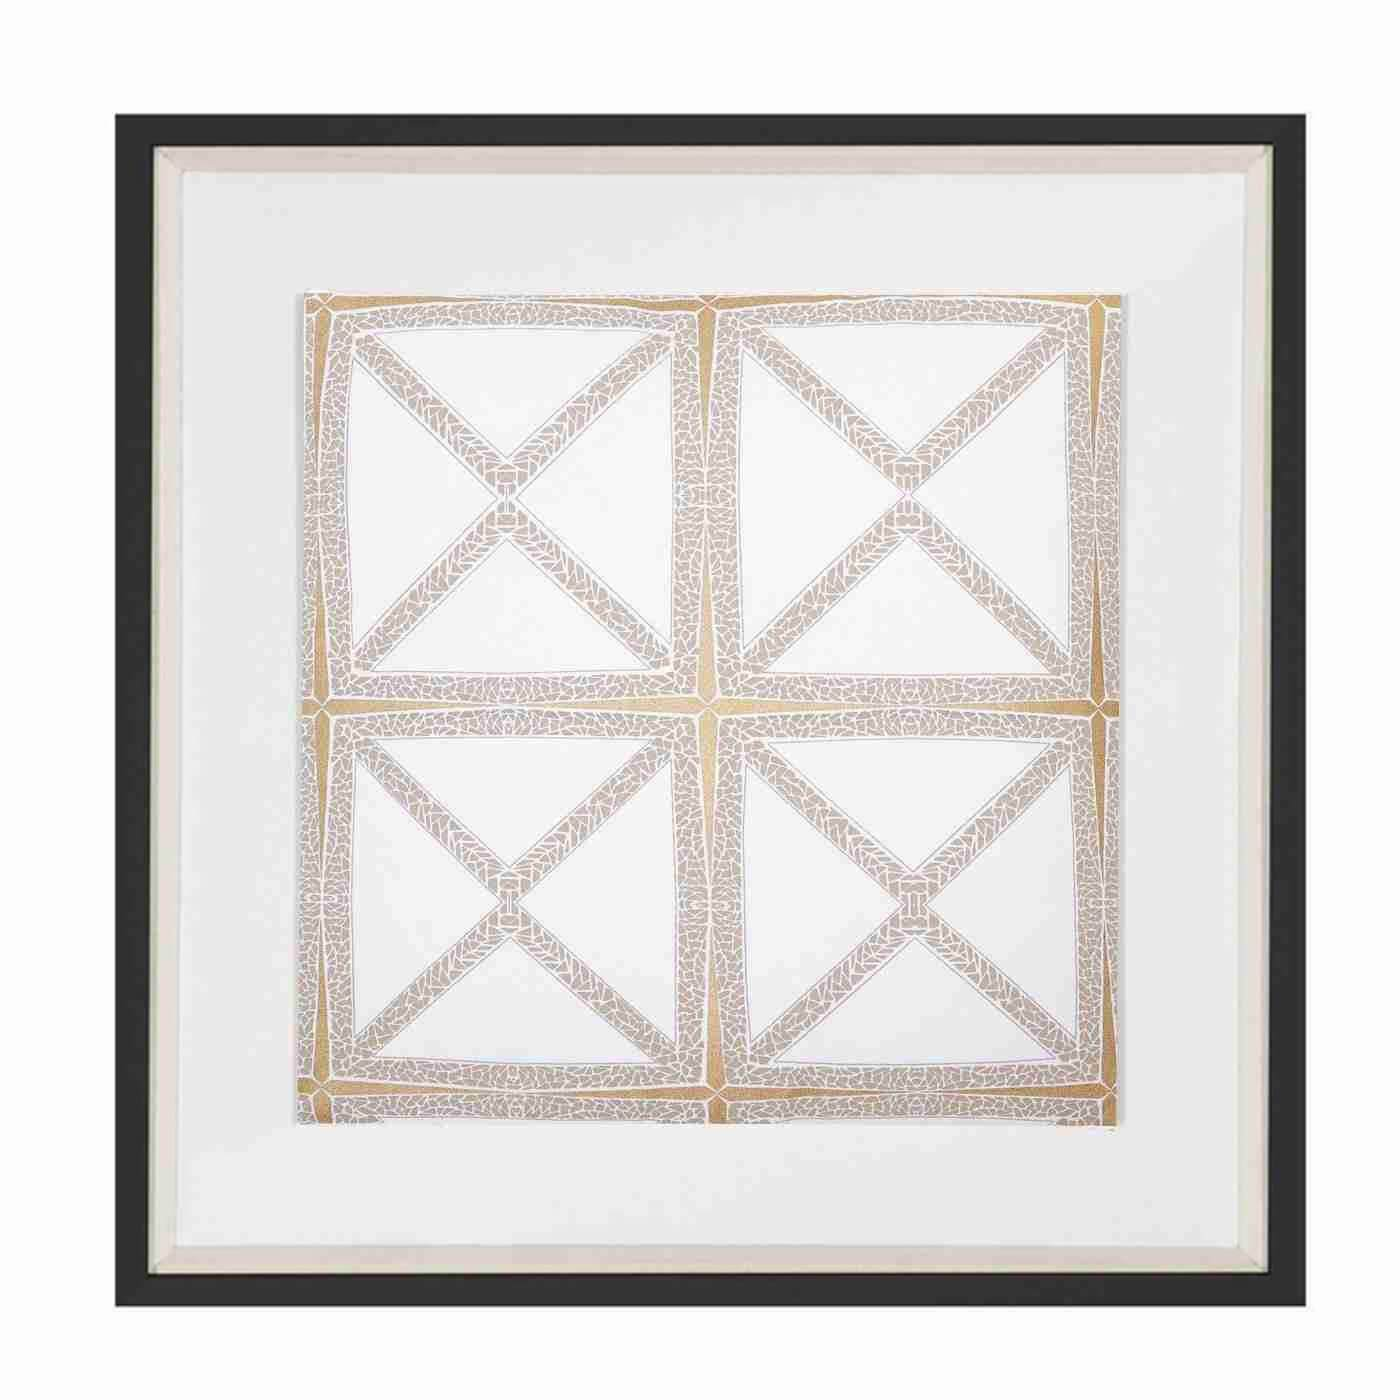 Bandhini Homewear Design Artwork White / Exotic Light / 22 x 22 Mosaic White Artwork 52x52cm